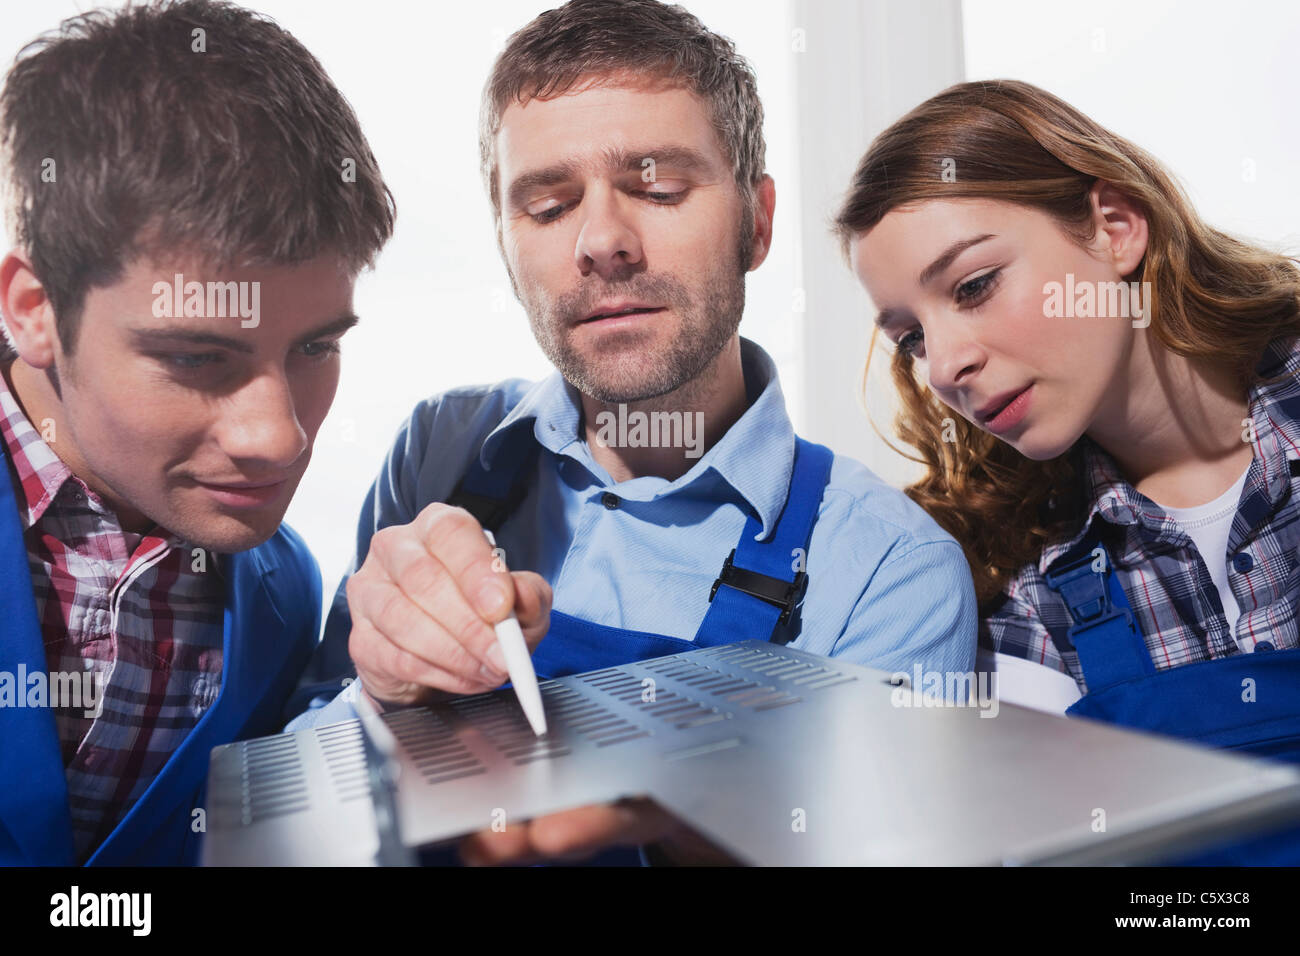 Germany, Neukirch, Apprentices and foreman, portrait - Stock Image